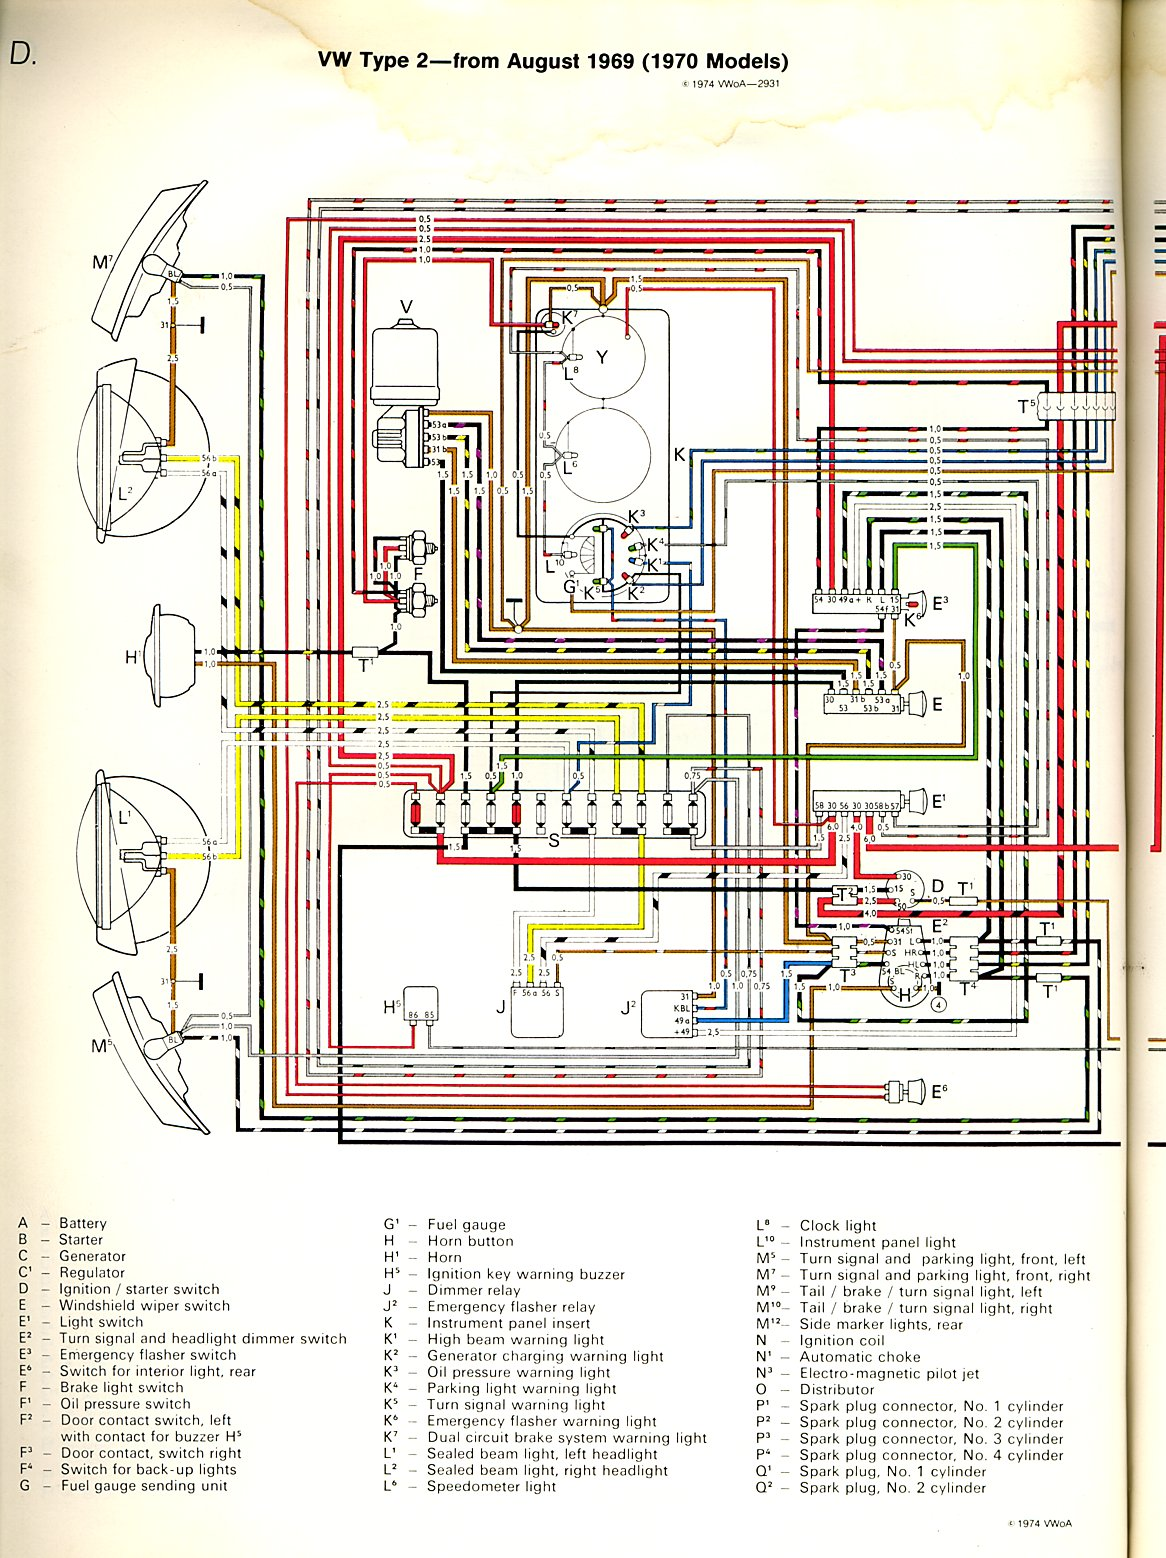 baybus_70a bus wiring diagram vw wiring harness diagram \u2022 wiring diagrams j 1971 vw bus wiring diagram at gsmportal.co